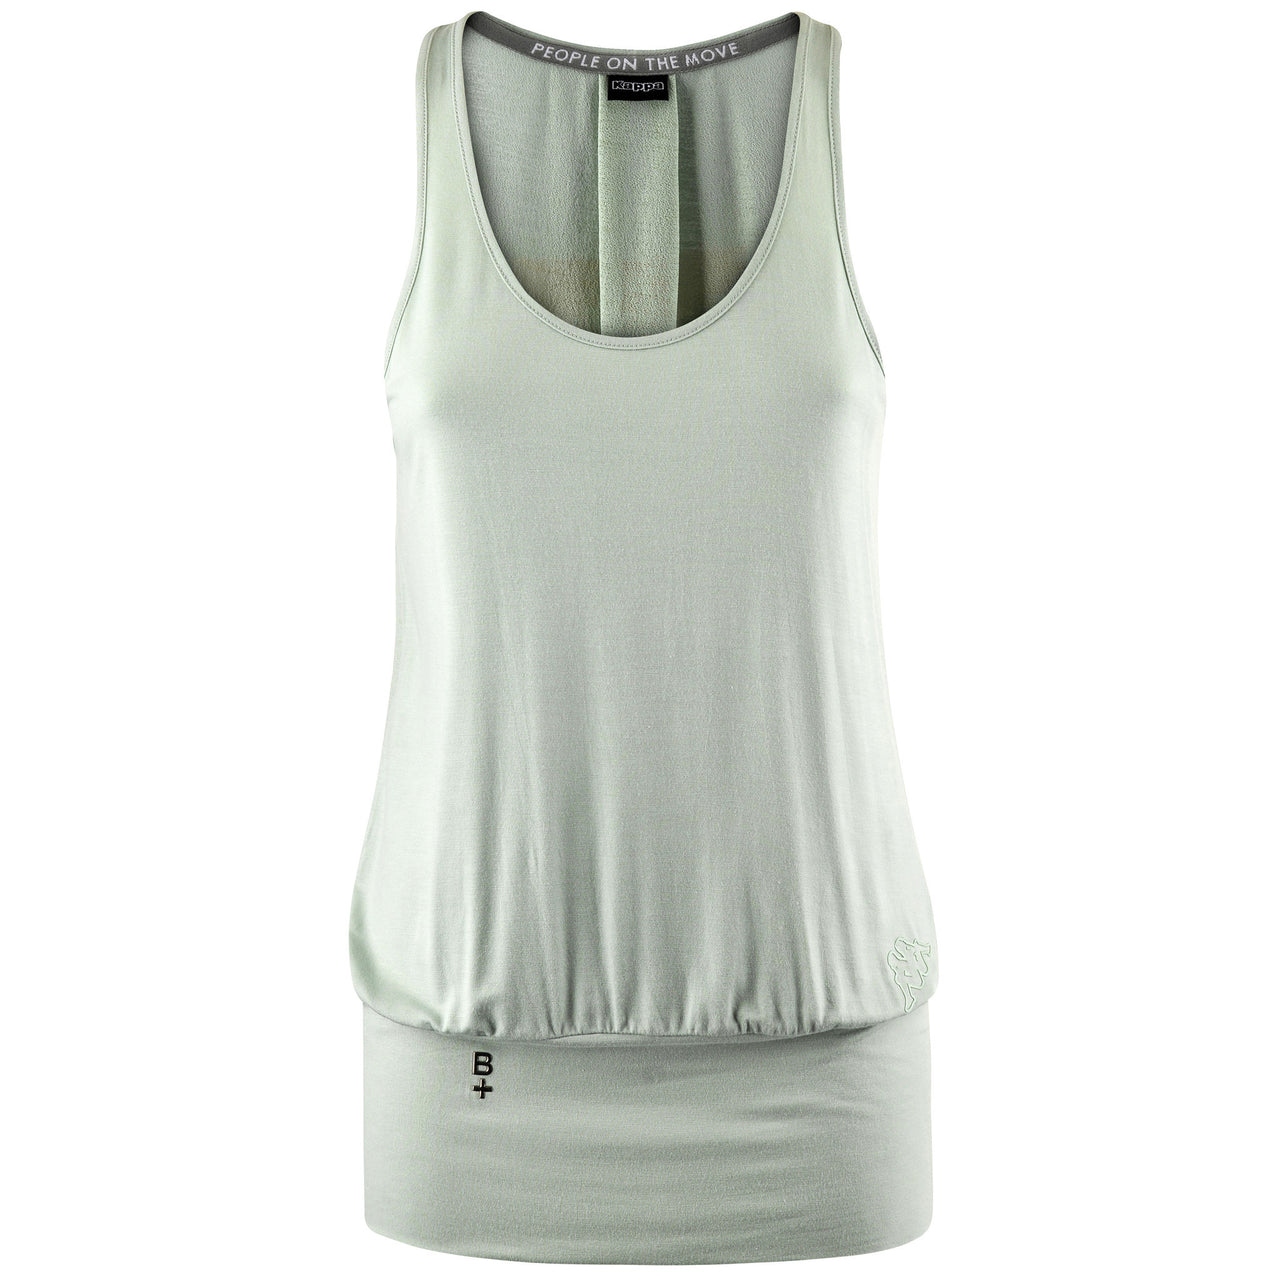 KAPPA WOMEN'S BE POSITIVE ZALBE-Regular FIt Training Yoga Tank Top